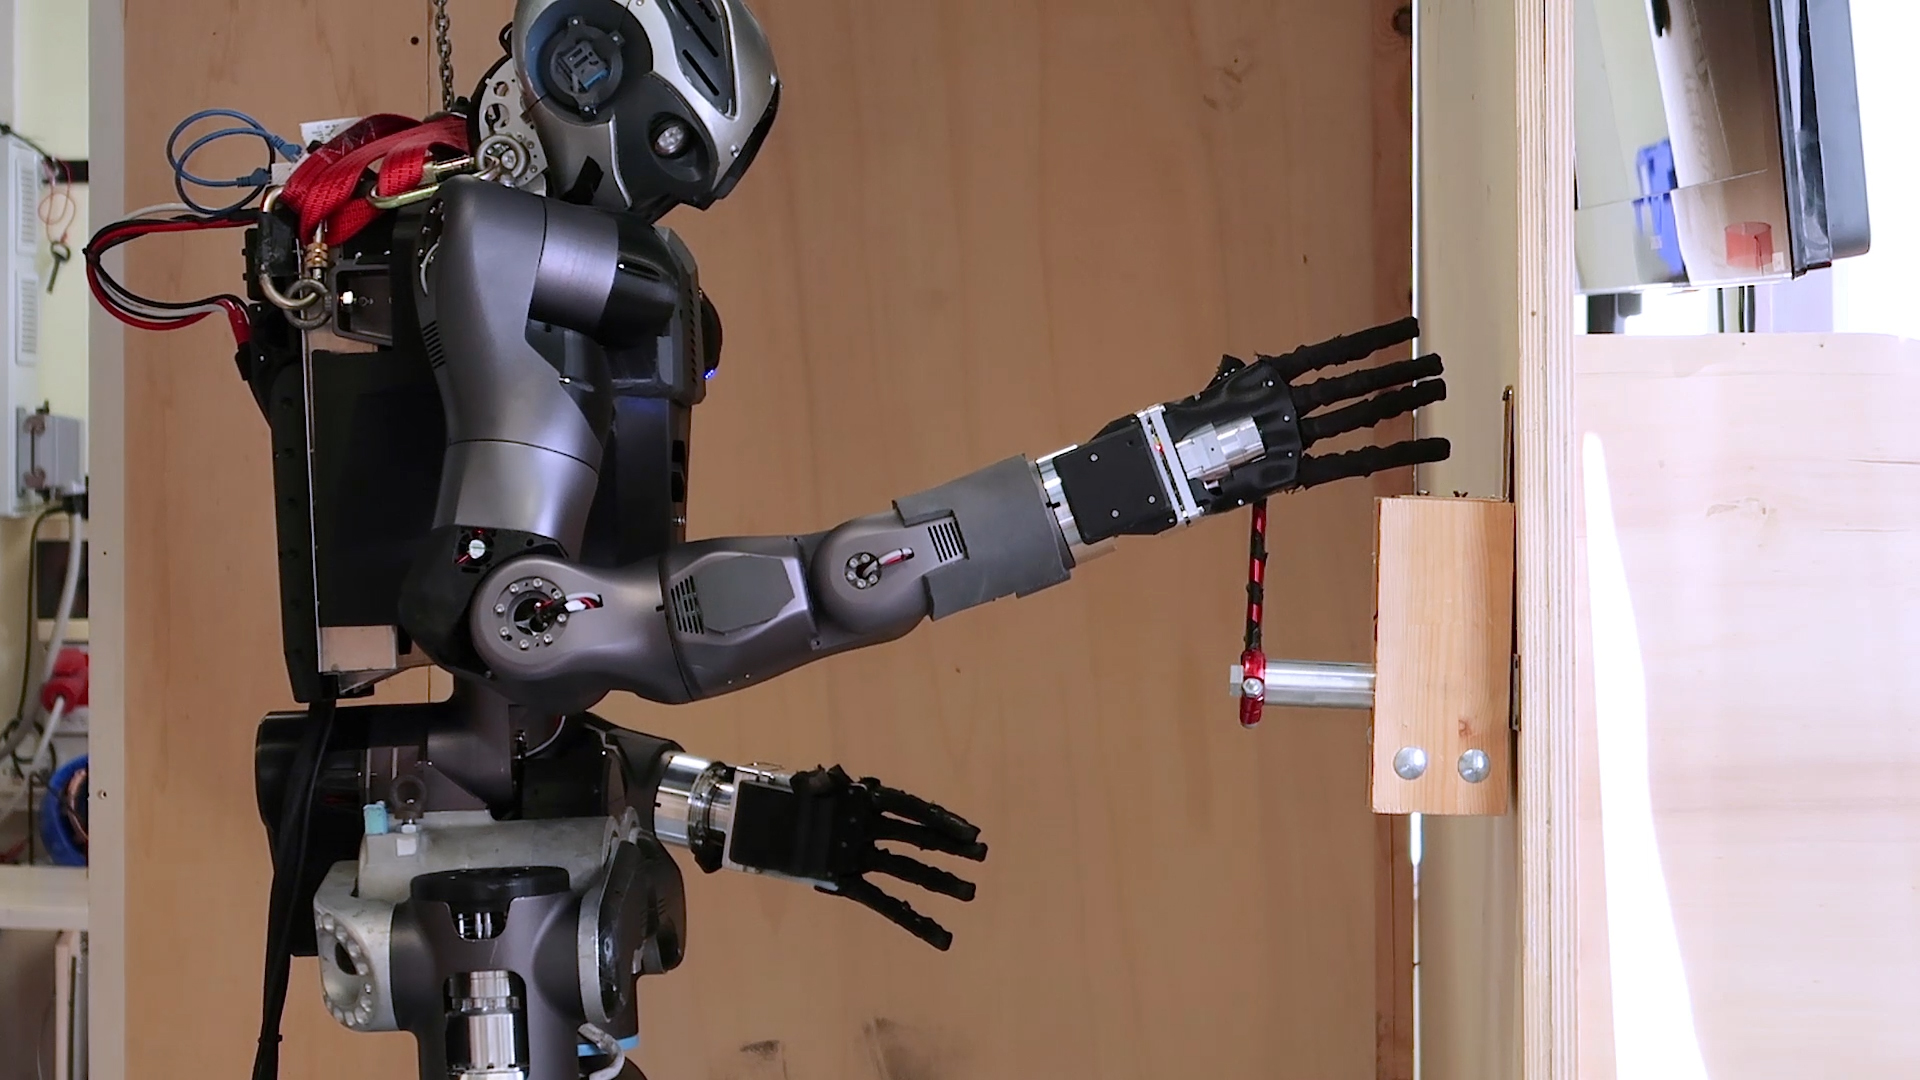 This WALK-MAN humanoid robot can go places too dangerous for people.